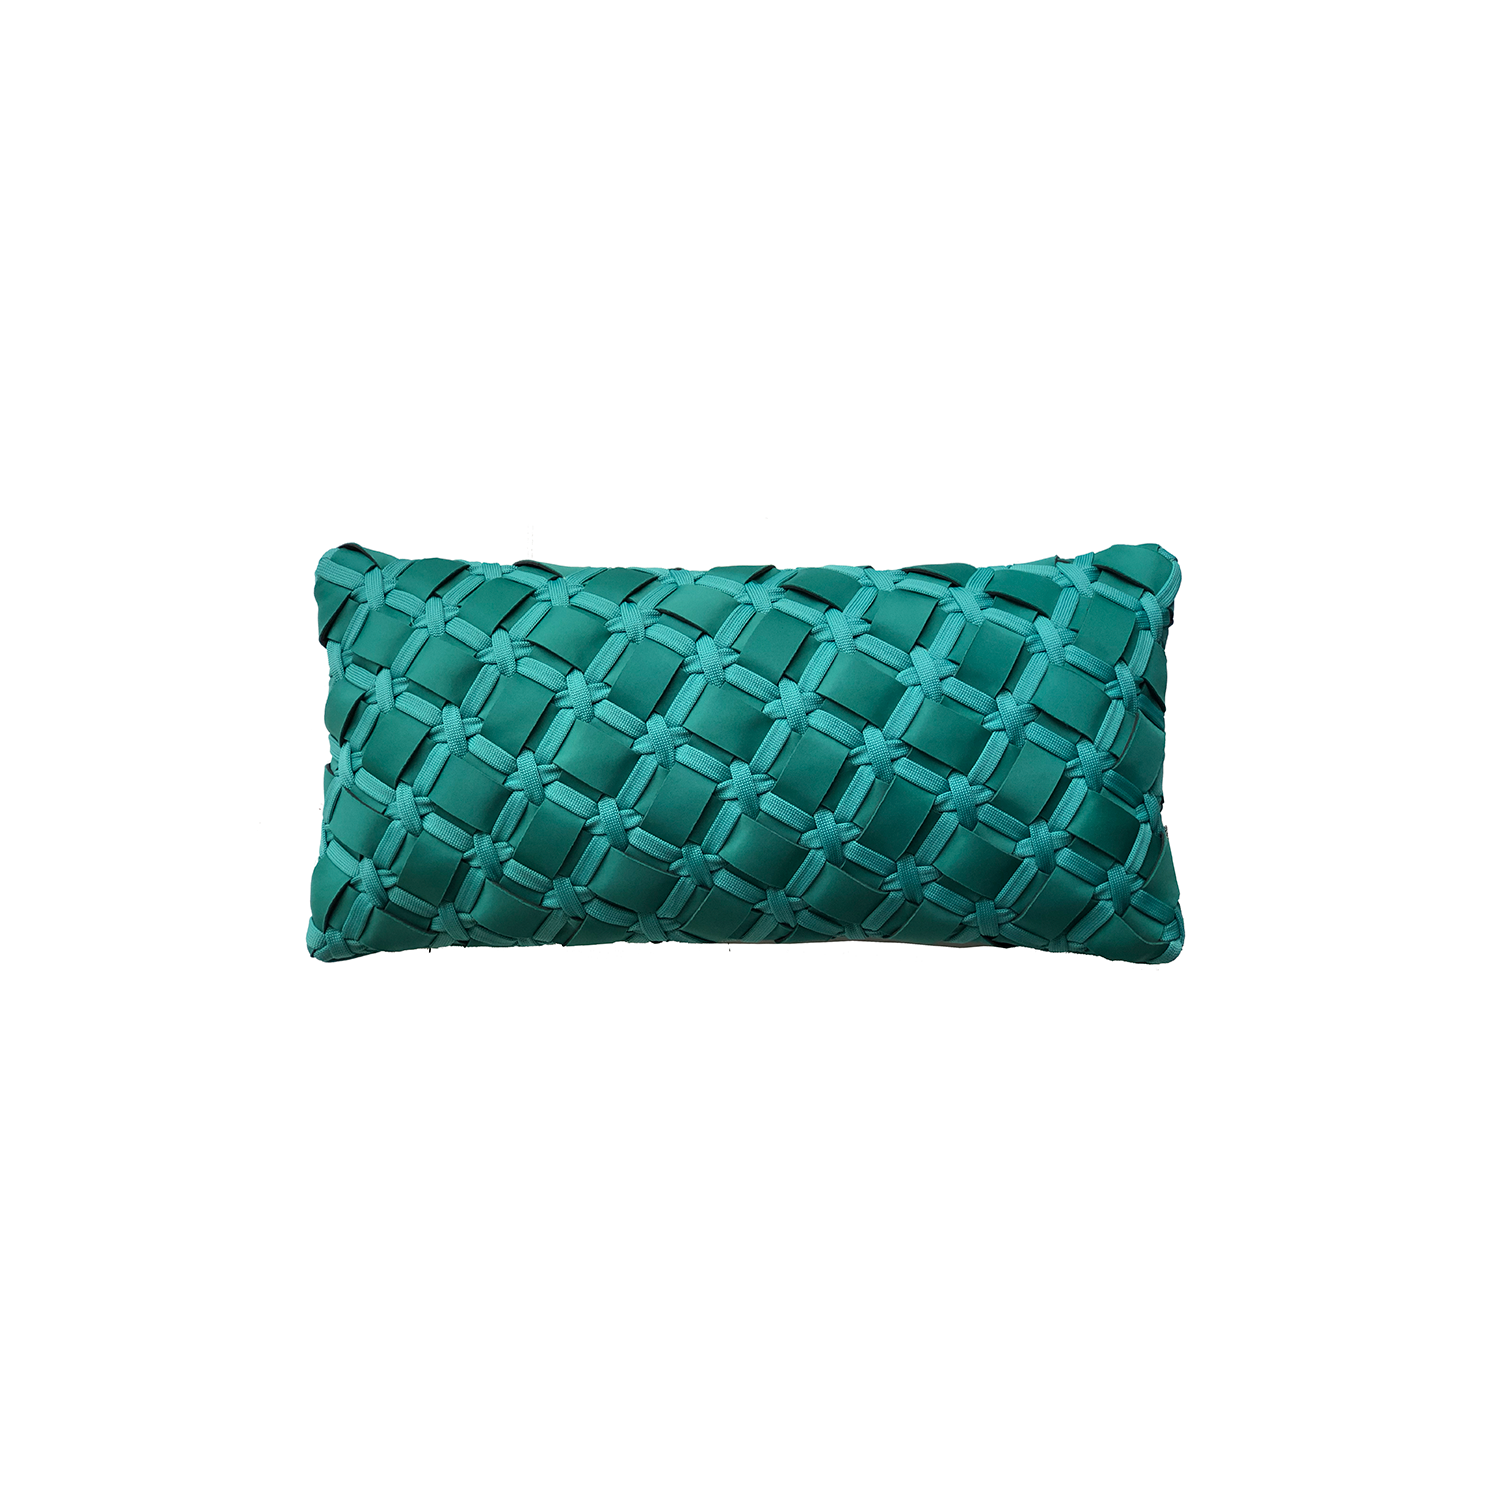 Geometrico Neo Cushion Small - The Geometrico Neo Cushion is carefully knitted within a trained community of women that found in their craft a way to provide for their families. The outdoor collection is made with synthetic fibres, resistant to weather exposure. The use of neoprene brings comfort and technology to the cushions.  The front panel is in neoprene combined with hand woven nautical cord, made in Brazil.  The inner cushion is in Hollow Fibre, made in the UK.  Please enquire for more information and see colour chart for reference.  | Matter of Stuff